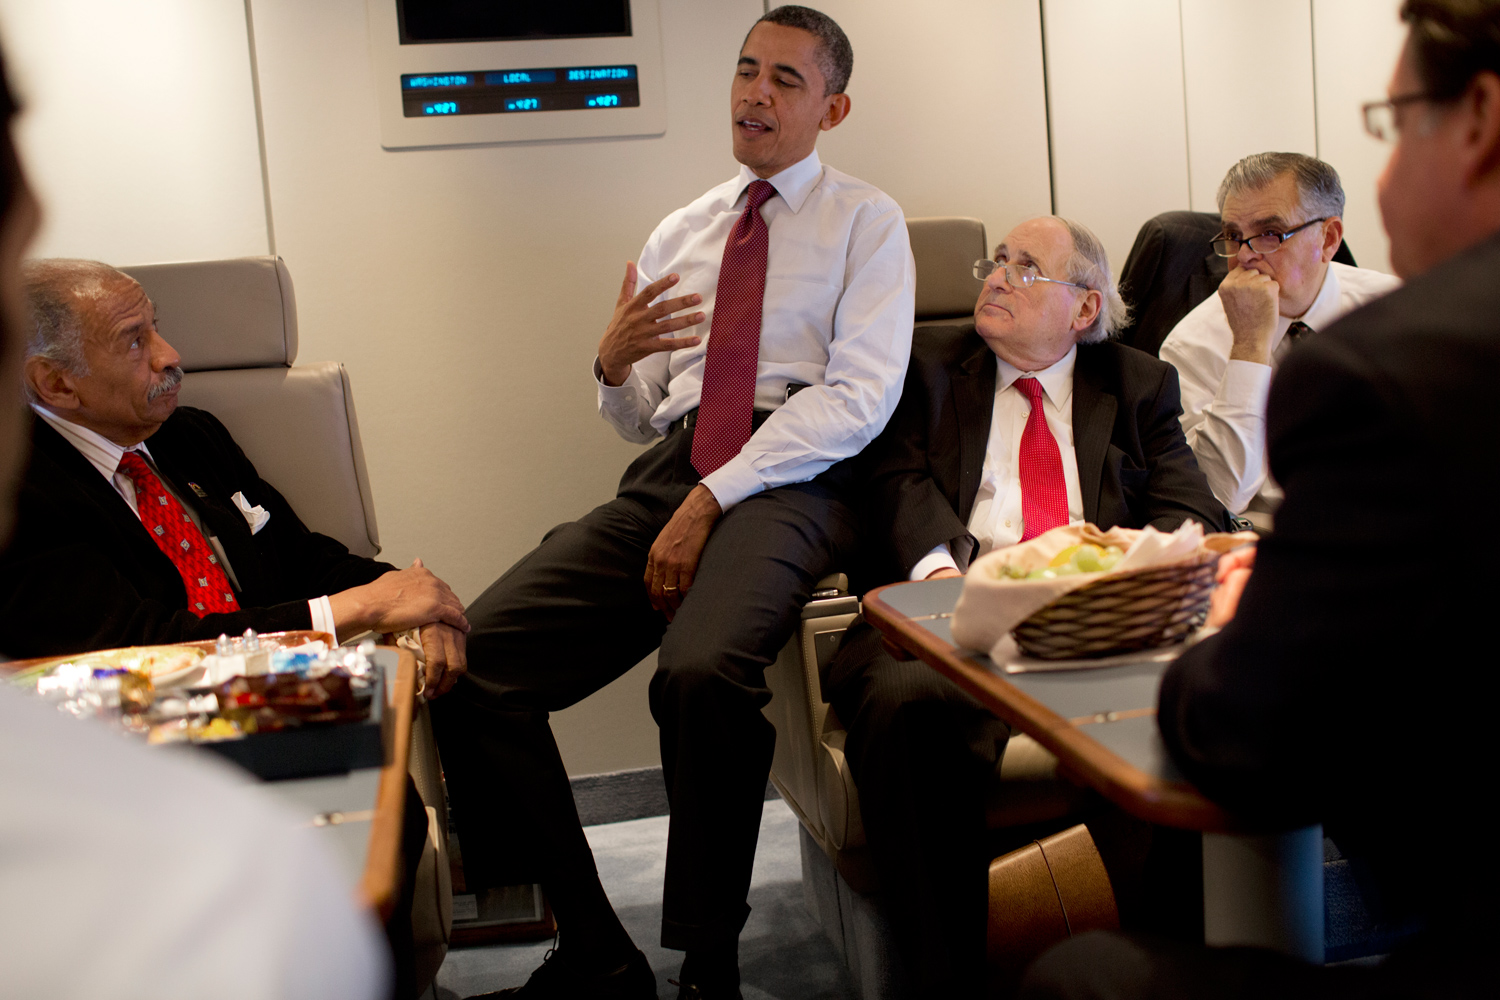 After re-boarding Air Force One, the President meets with Michigan Congressman John Conyers Jr., Michigan Senator Carl Levin and U.S. Transportation Secretary Ray LaHood.